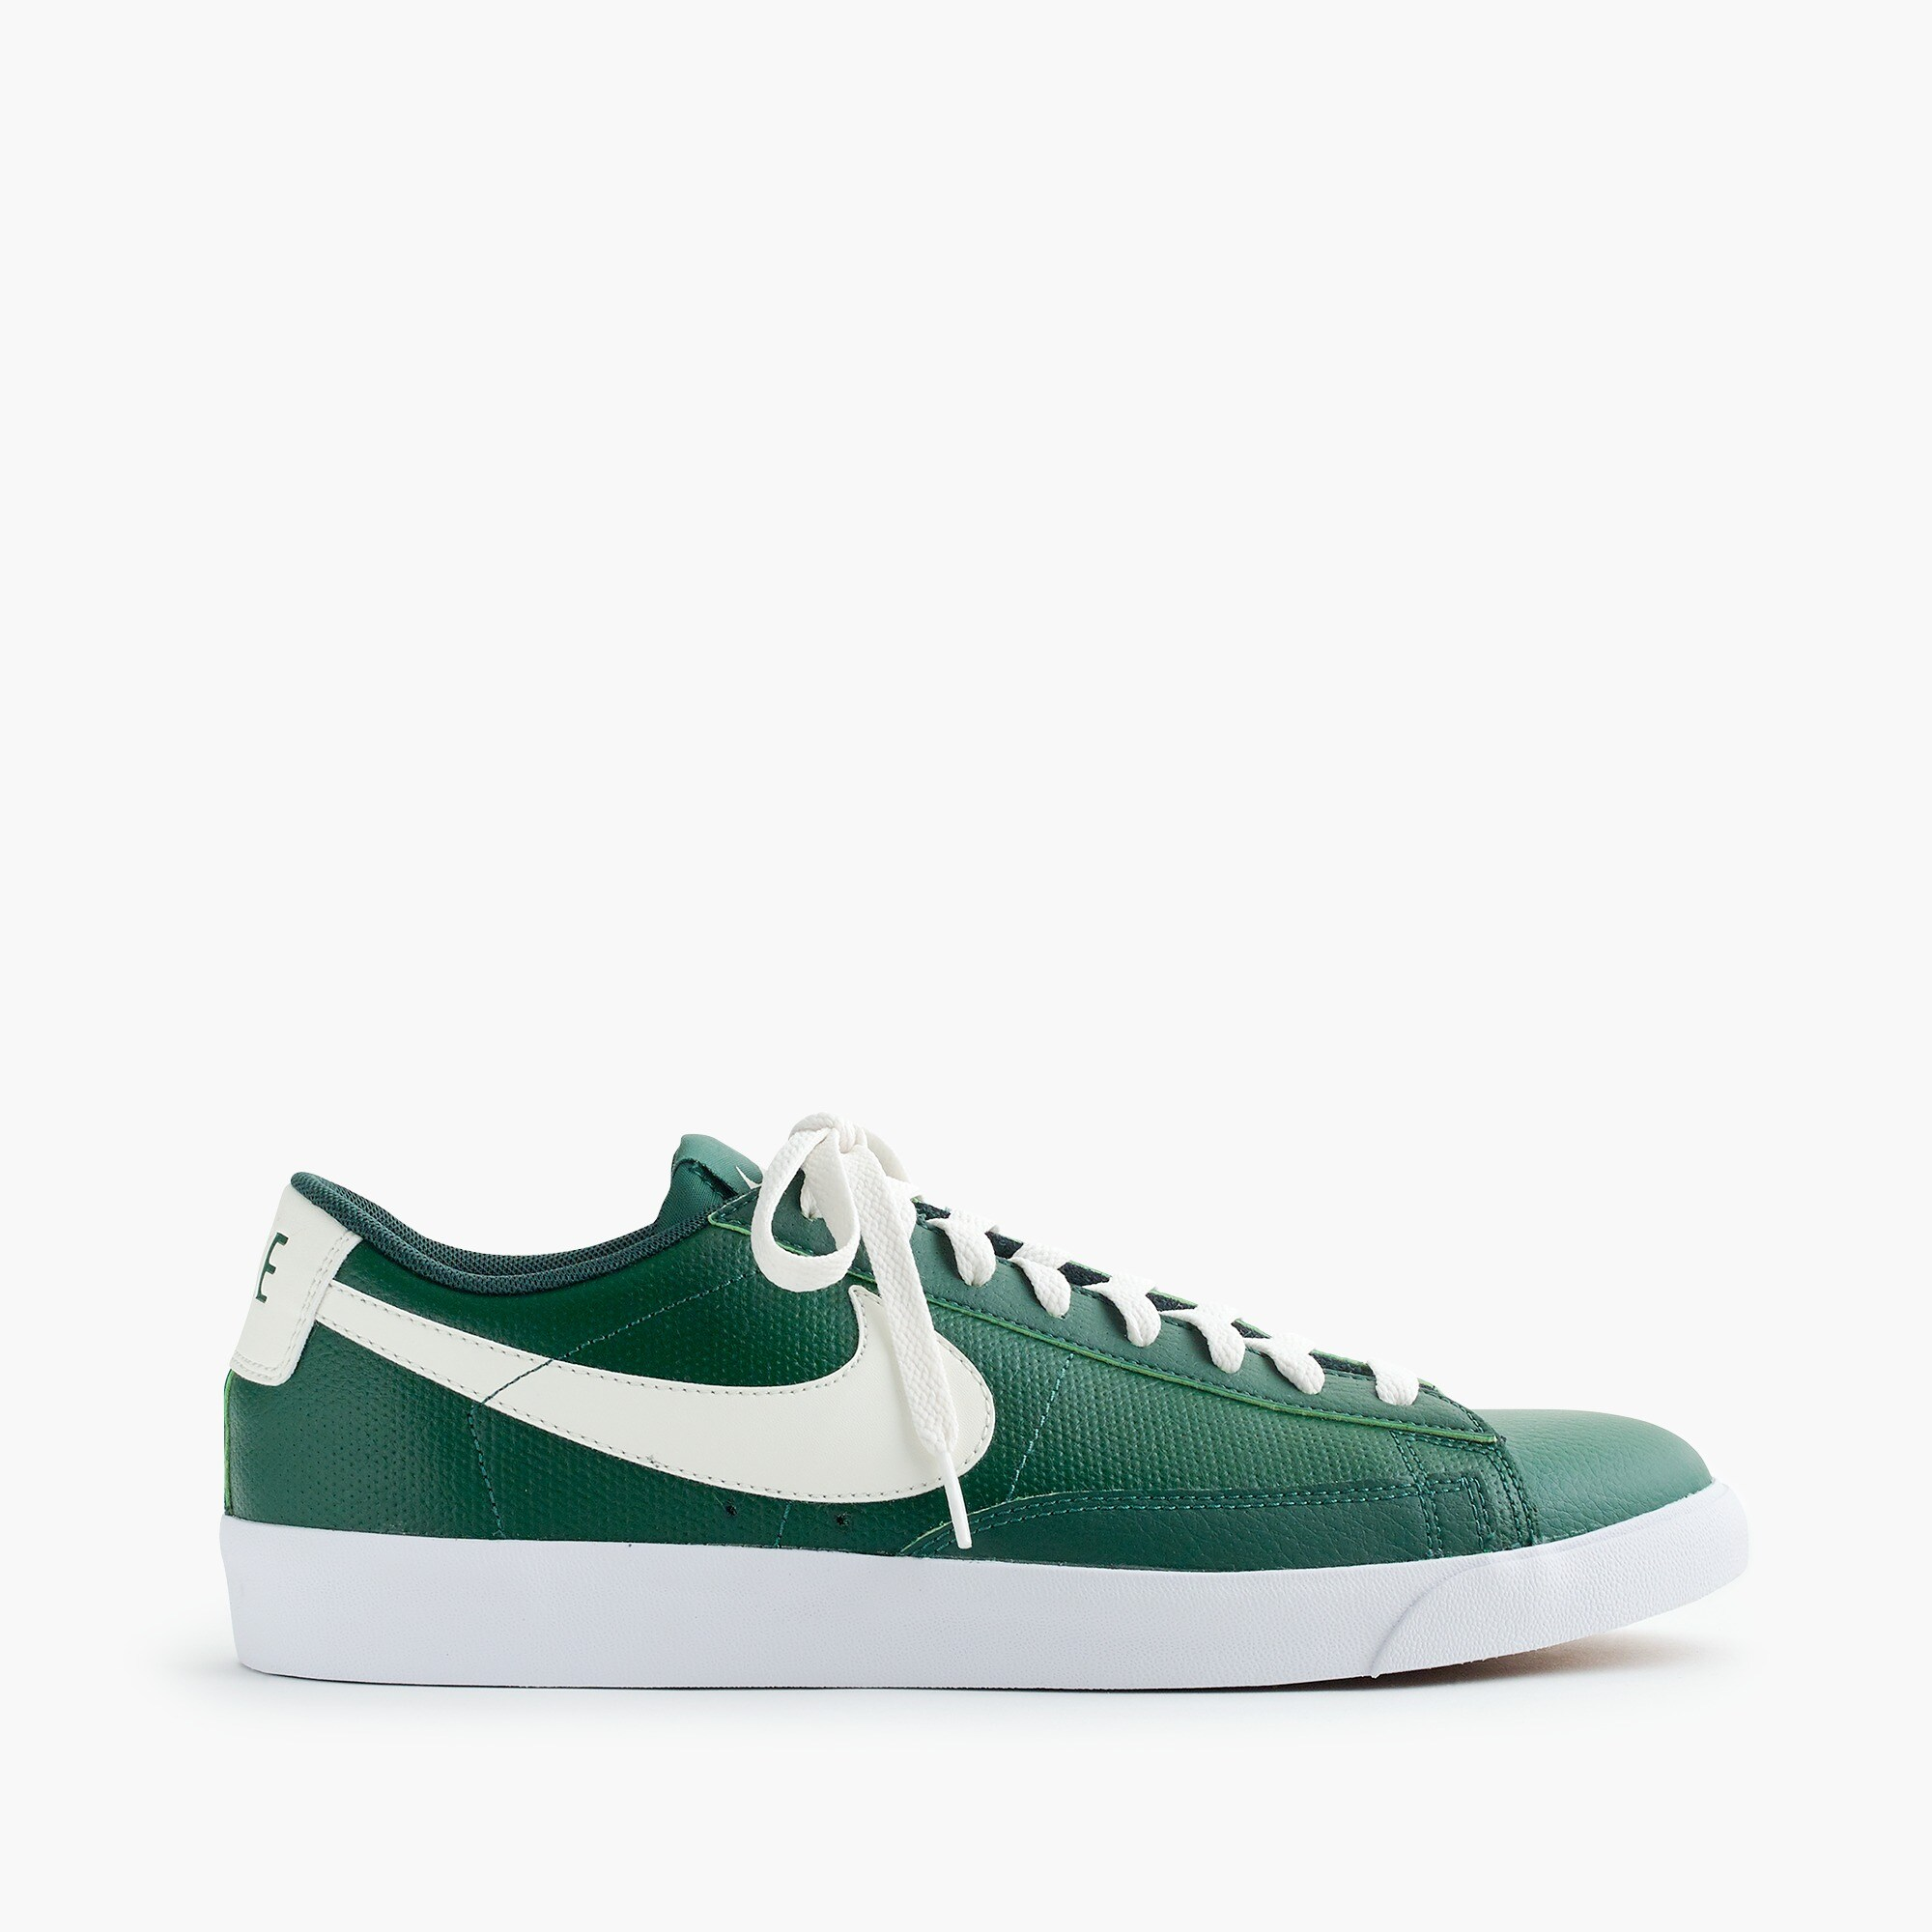 Image 2 for Nike® Blazer sneakers in leather